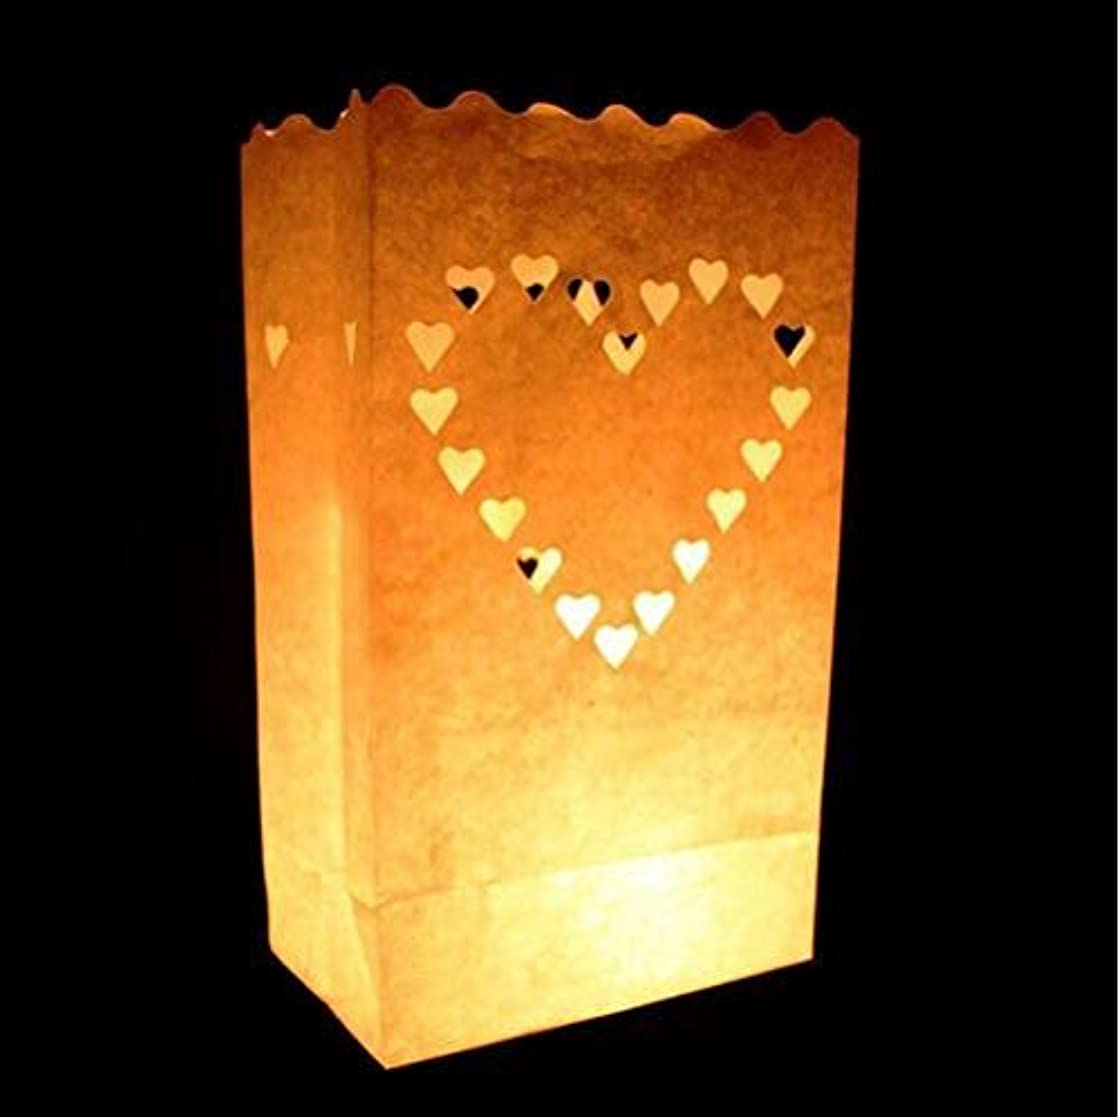 Since White Luminary Bags - 20 Count - Big Heart Design - Wedding, Reception, Party and Event Decor - Flame Resistant Paper - Luminaria (Big Heart)